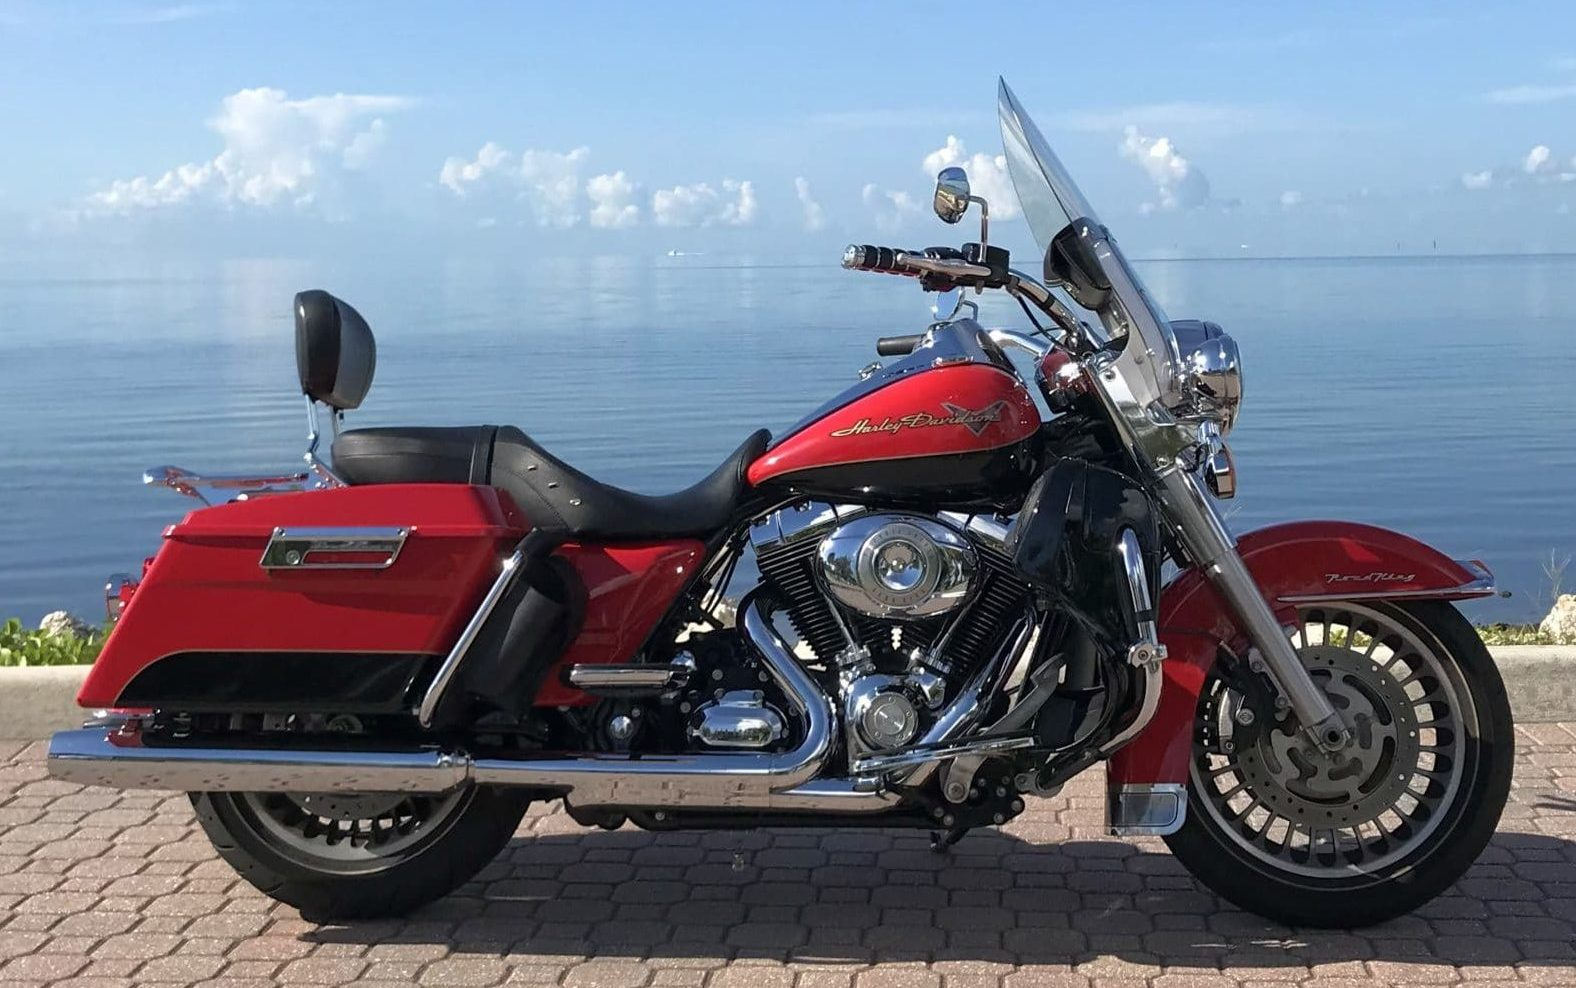 HD Road King '10 Motorcycle Rides In Florida